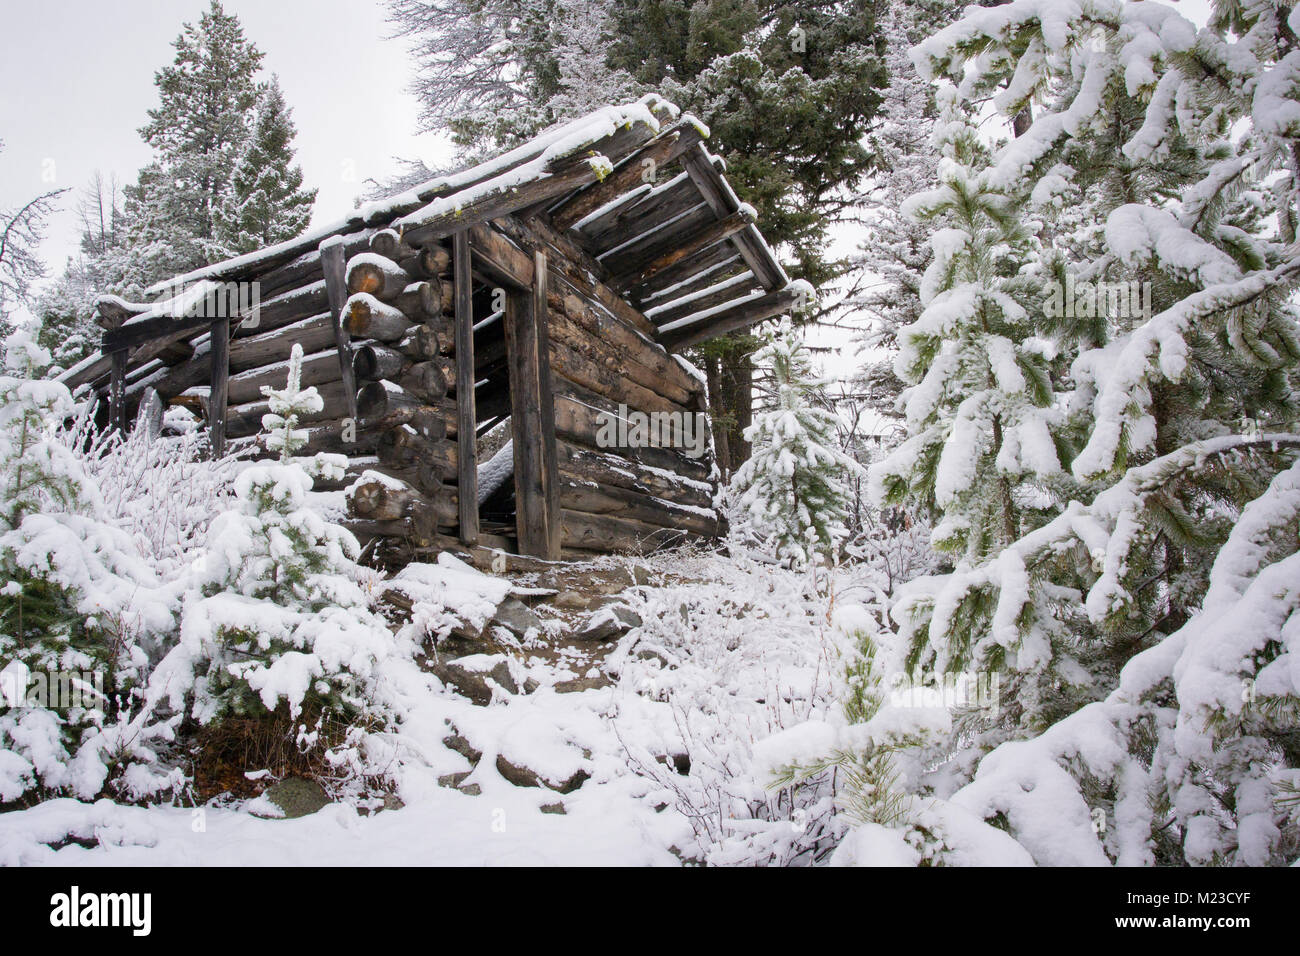 An abandoned cabin at the Coloma mining town, off the Garnet Range Road, northwest of Drummond, Montana in Missloula - Stock Image